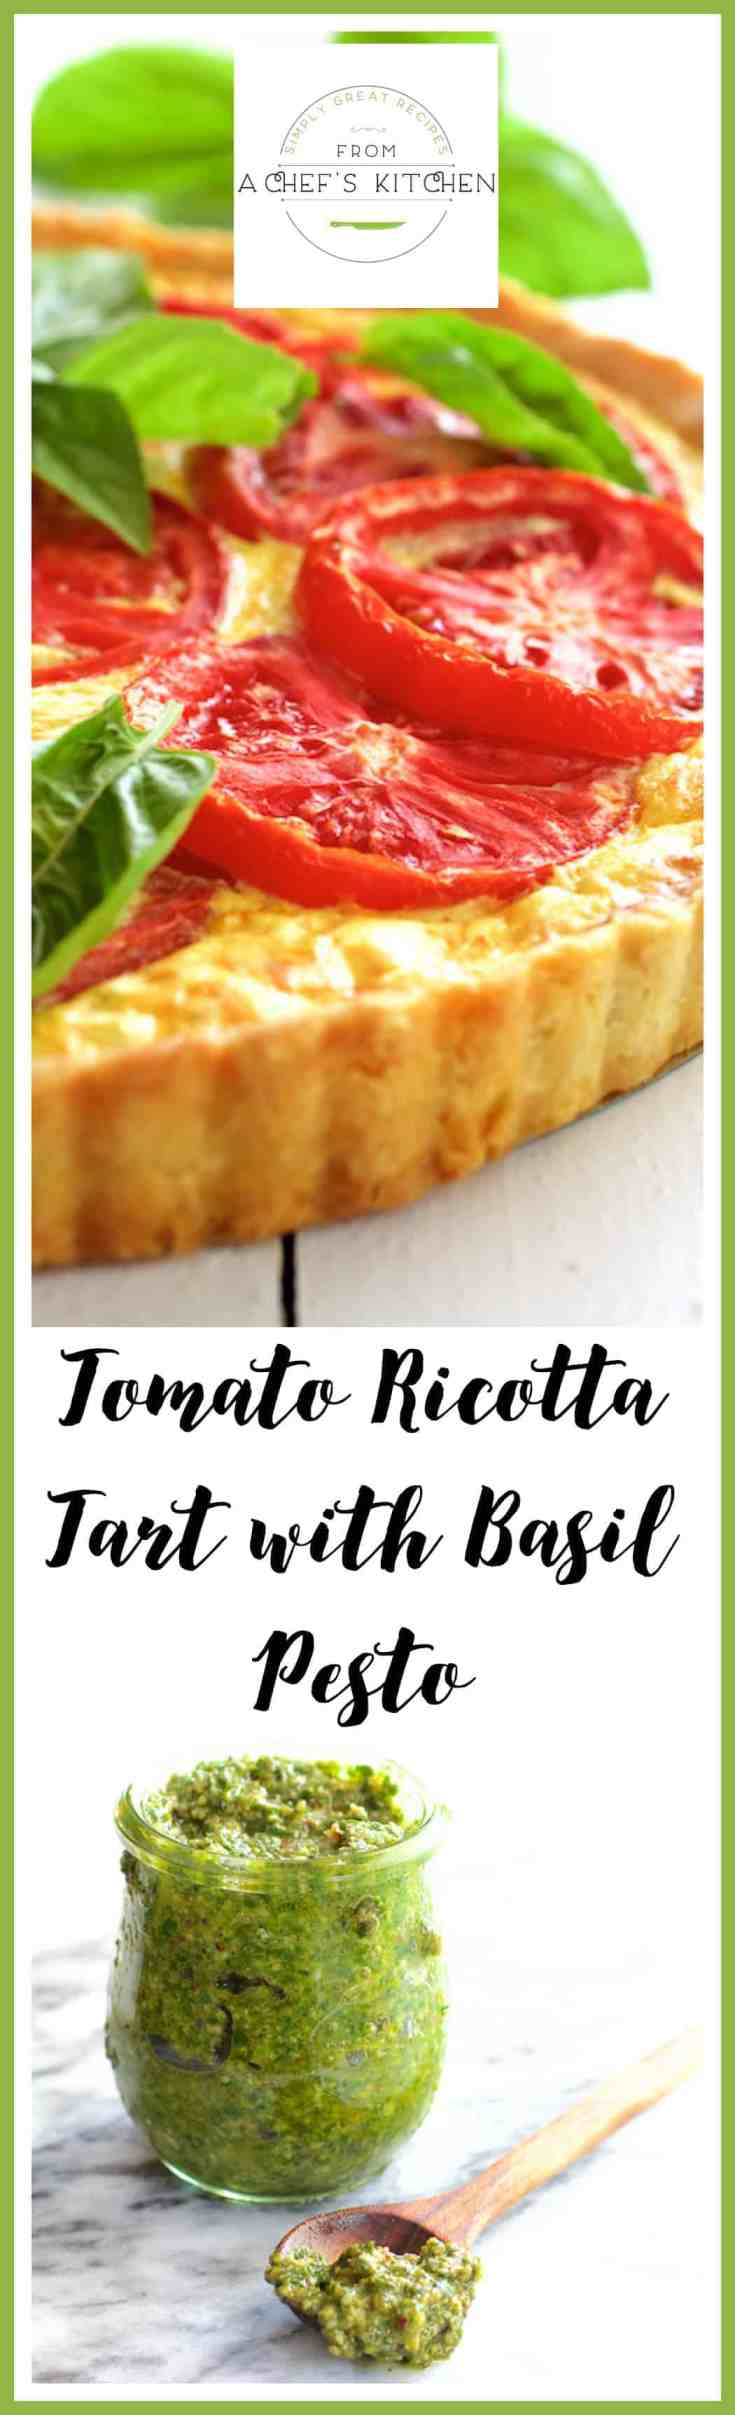 Tomato Ricotta Tart with Basil Pesto is a savory and delicious way to enjoy those tantalizing summer tomatoes and fresh basil! #tomato #tomatotart #ricotta #basilpesto